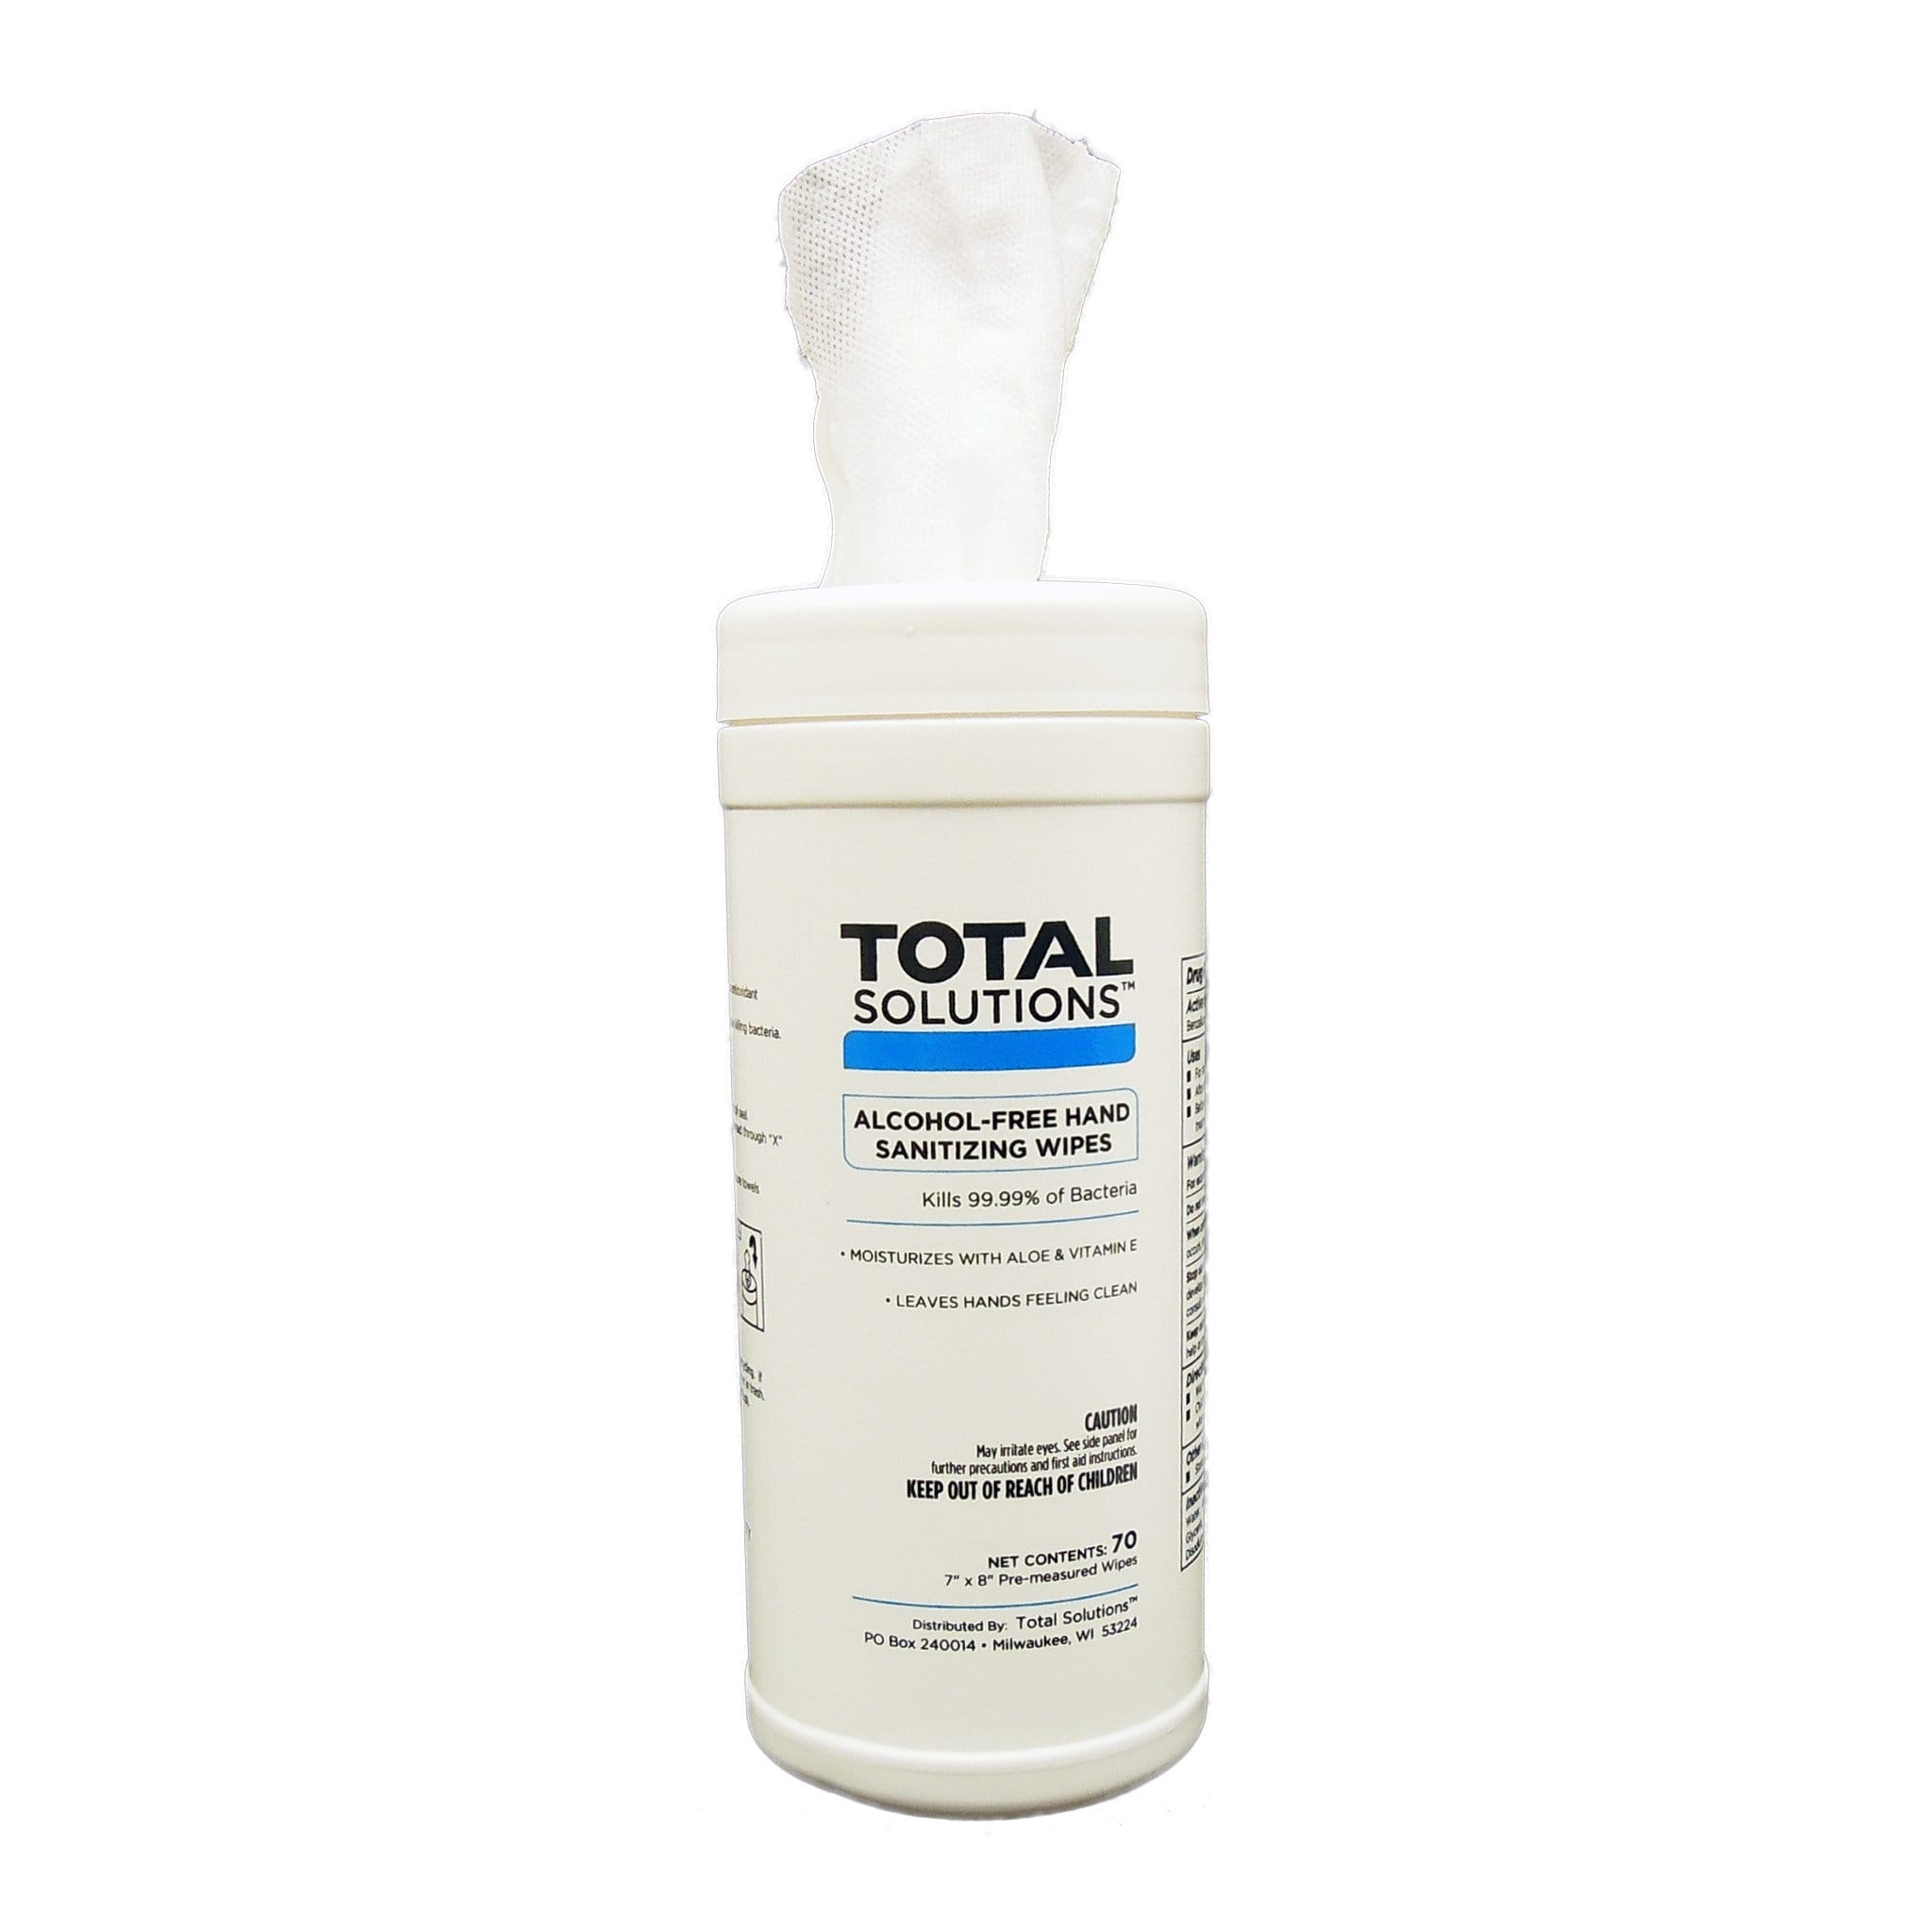 Total Solutions Alcohol-Free Sanitizing Wipes